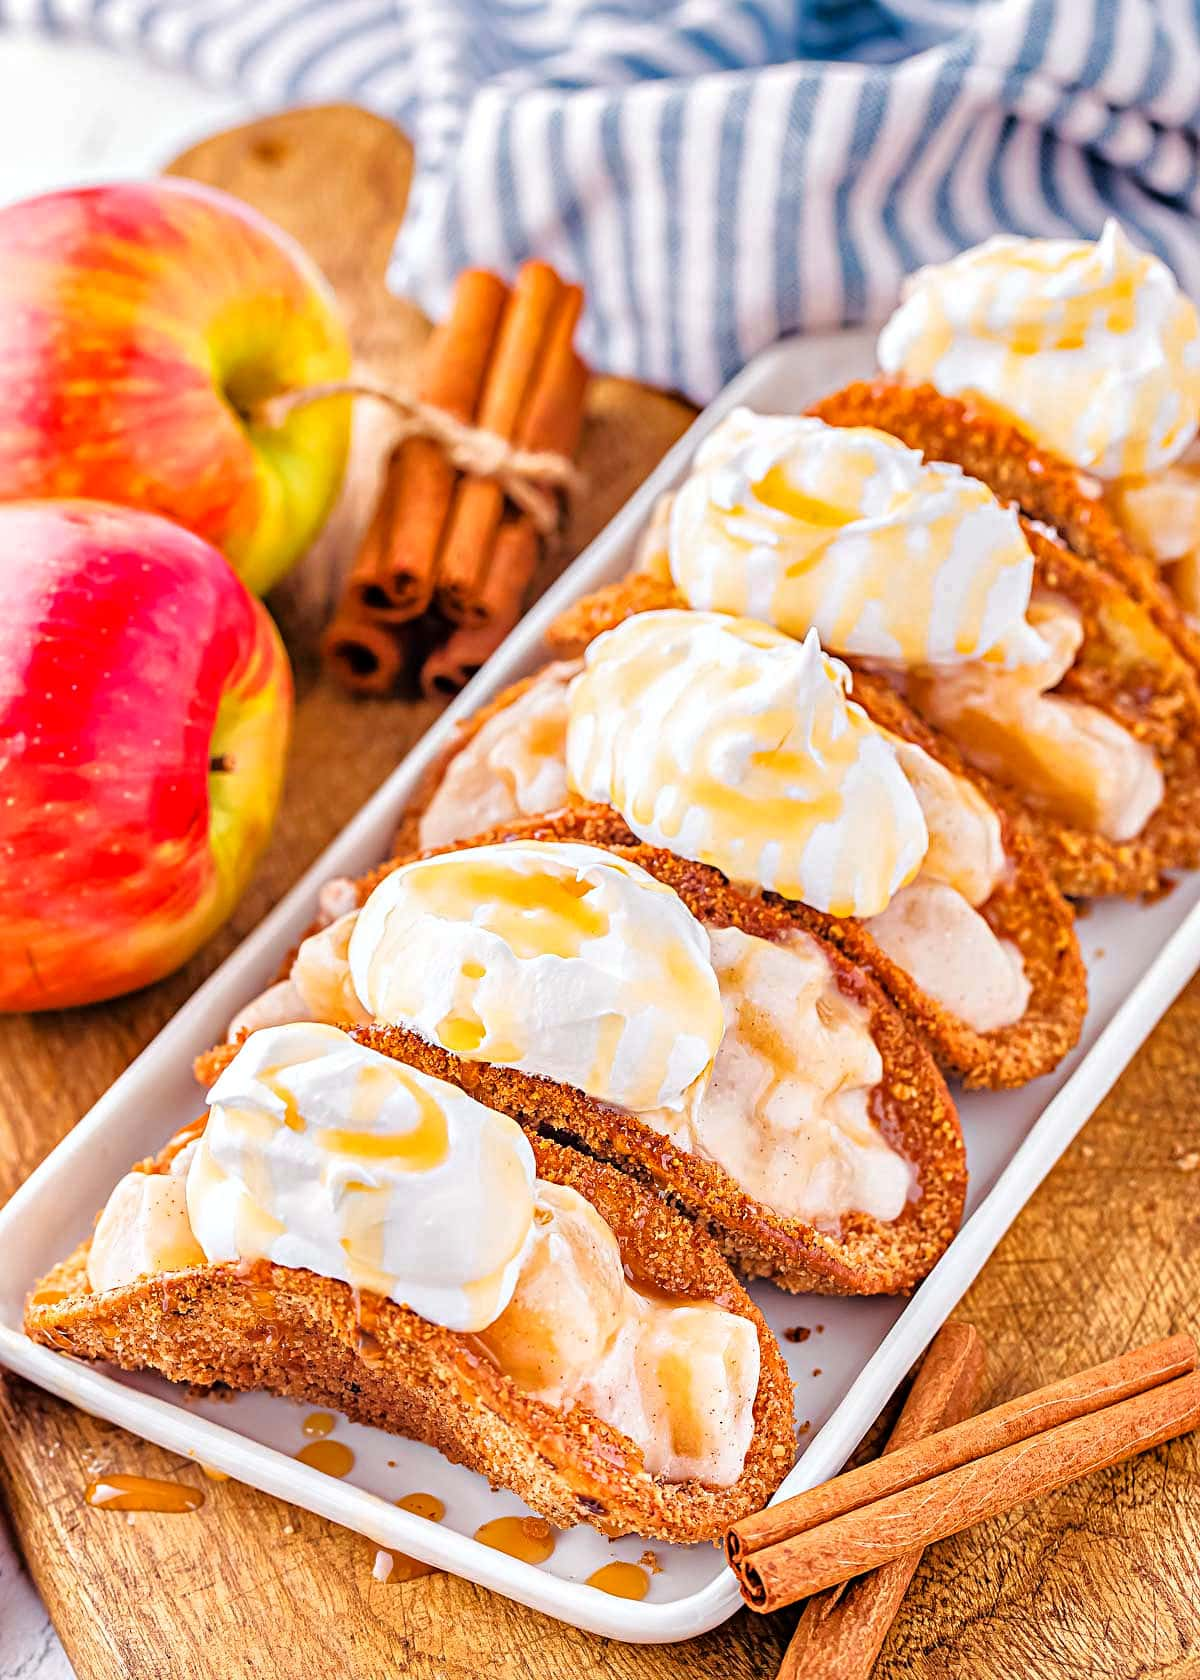 5 apple pie tacos on shallow white serving dish sitting next to blue and white striped napkin and fresh red apples.